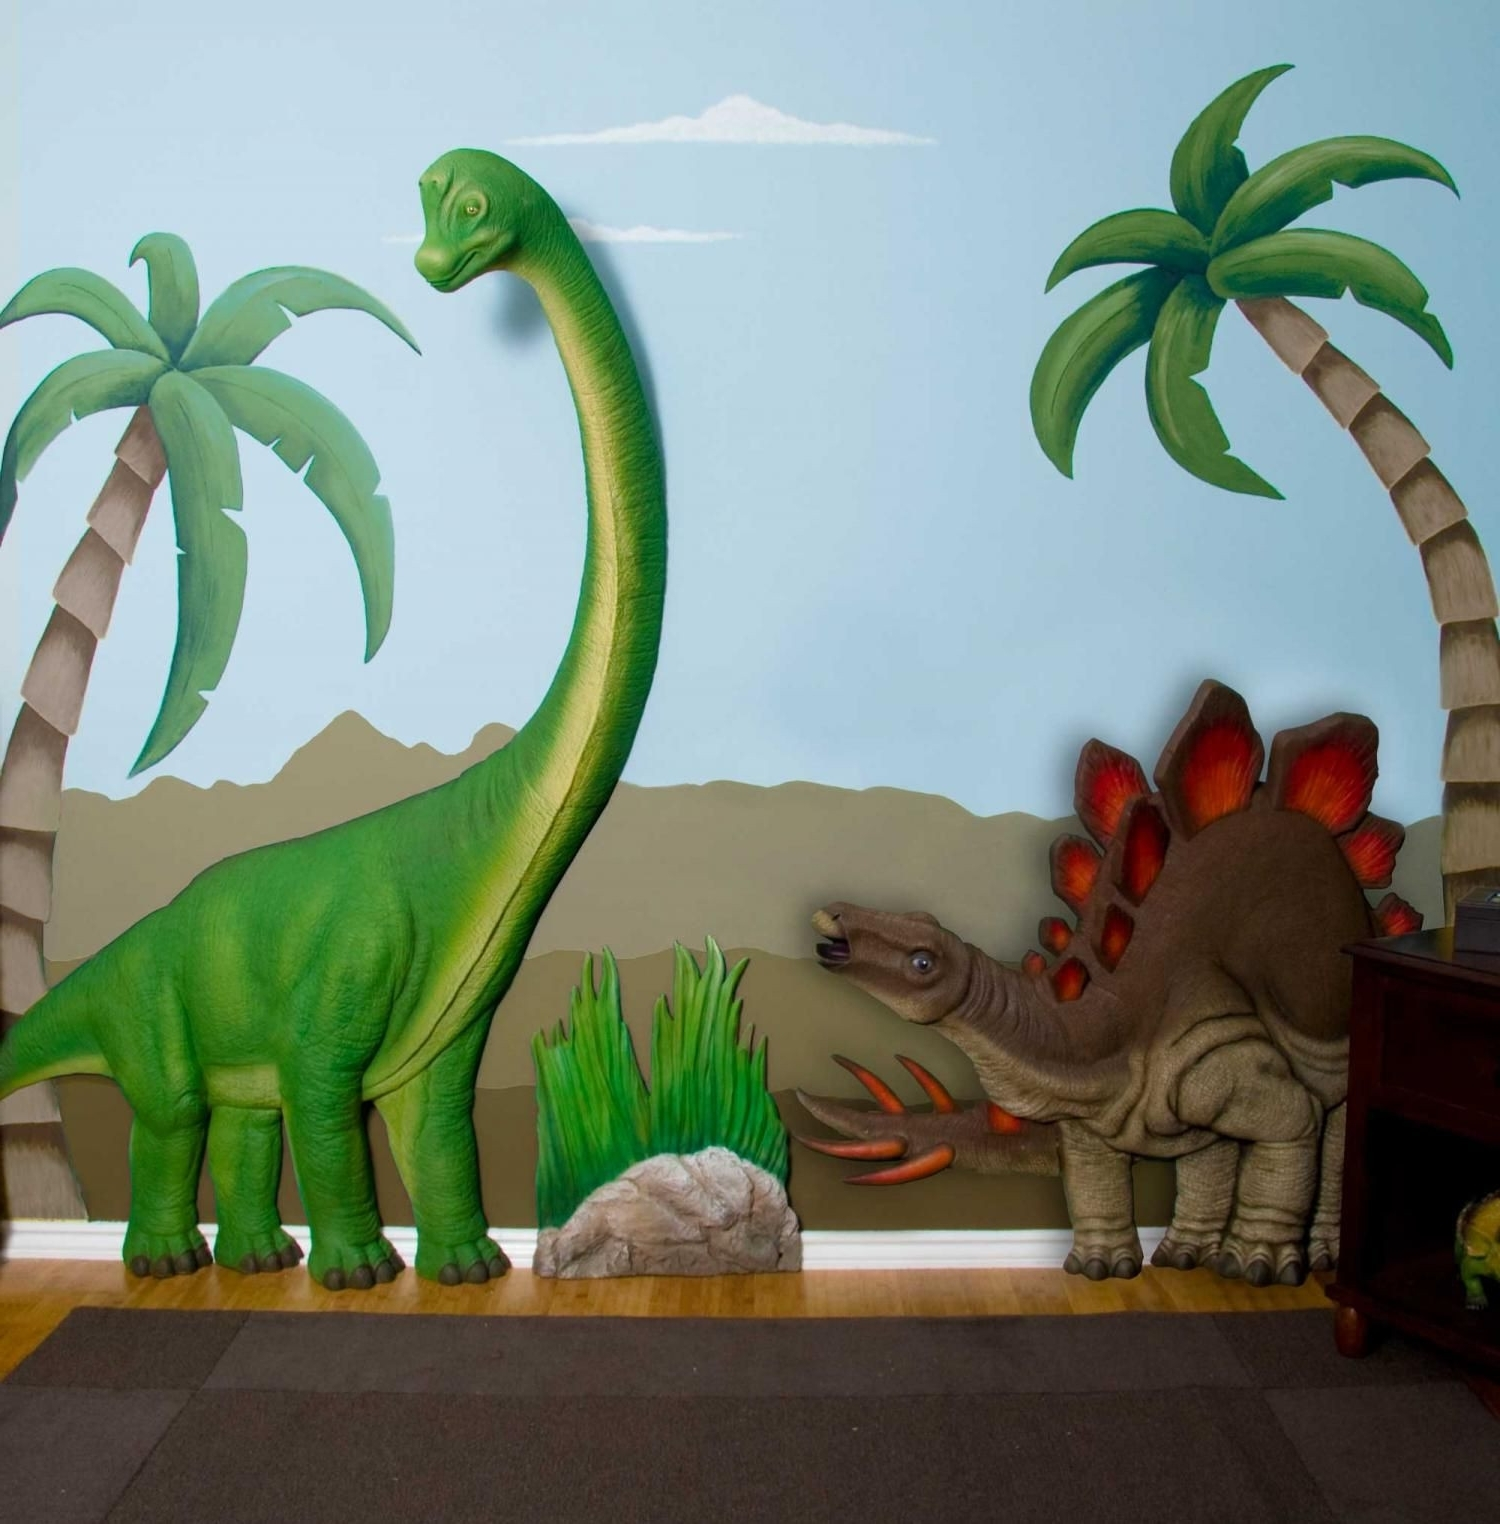 Dinosaur Wall Art Www Fitful Info Outstanding Stretched Canvas Inside Fashionable Dinosaur Wall Art (View 10 of 15)